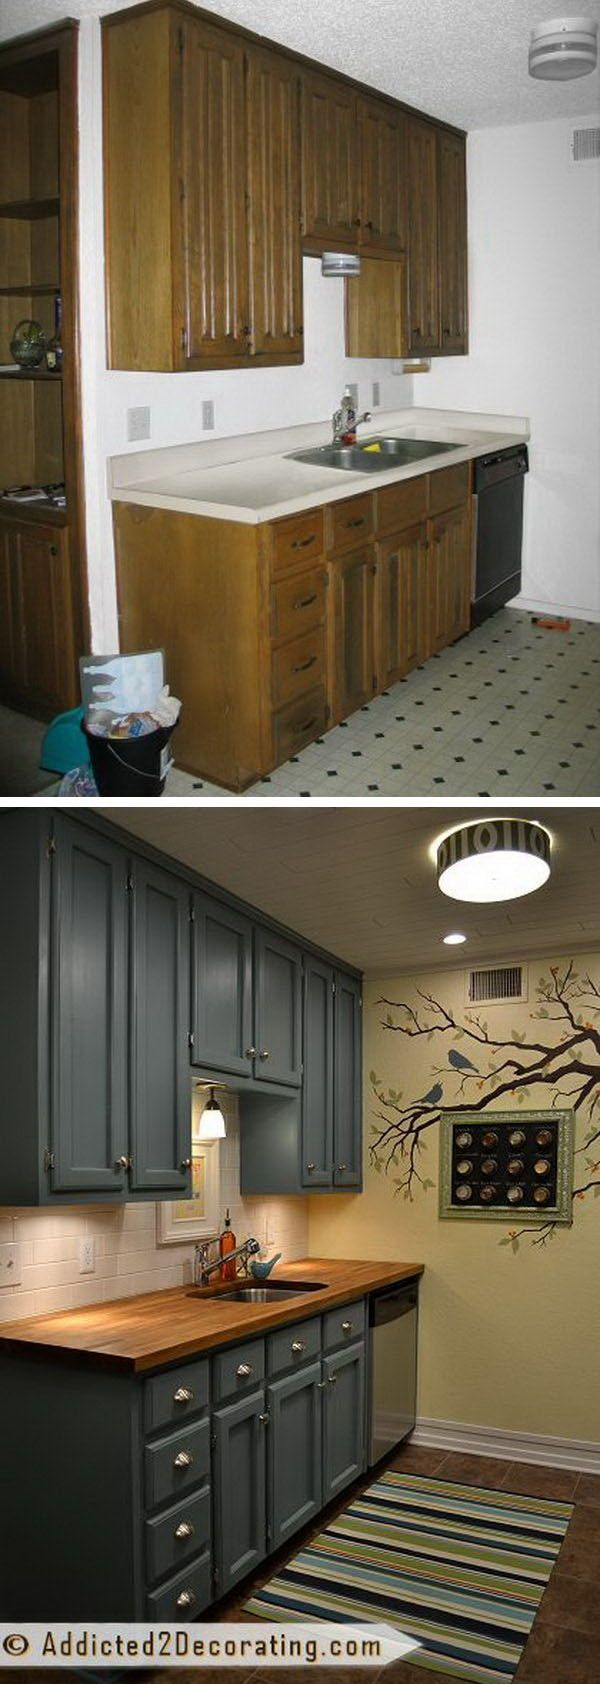 best 25+ cheap remodeling ideas ideas on pinterest | cheap kitchen